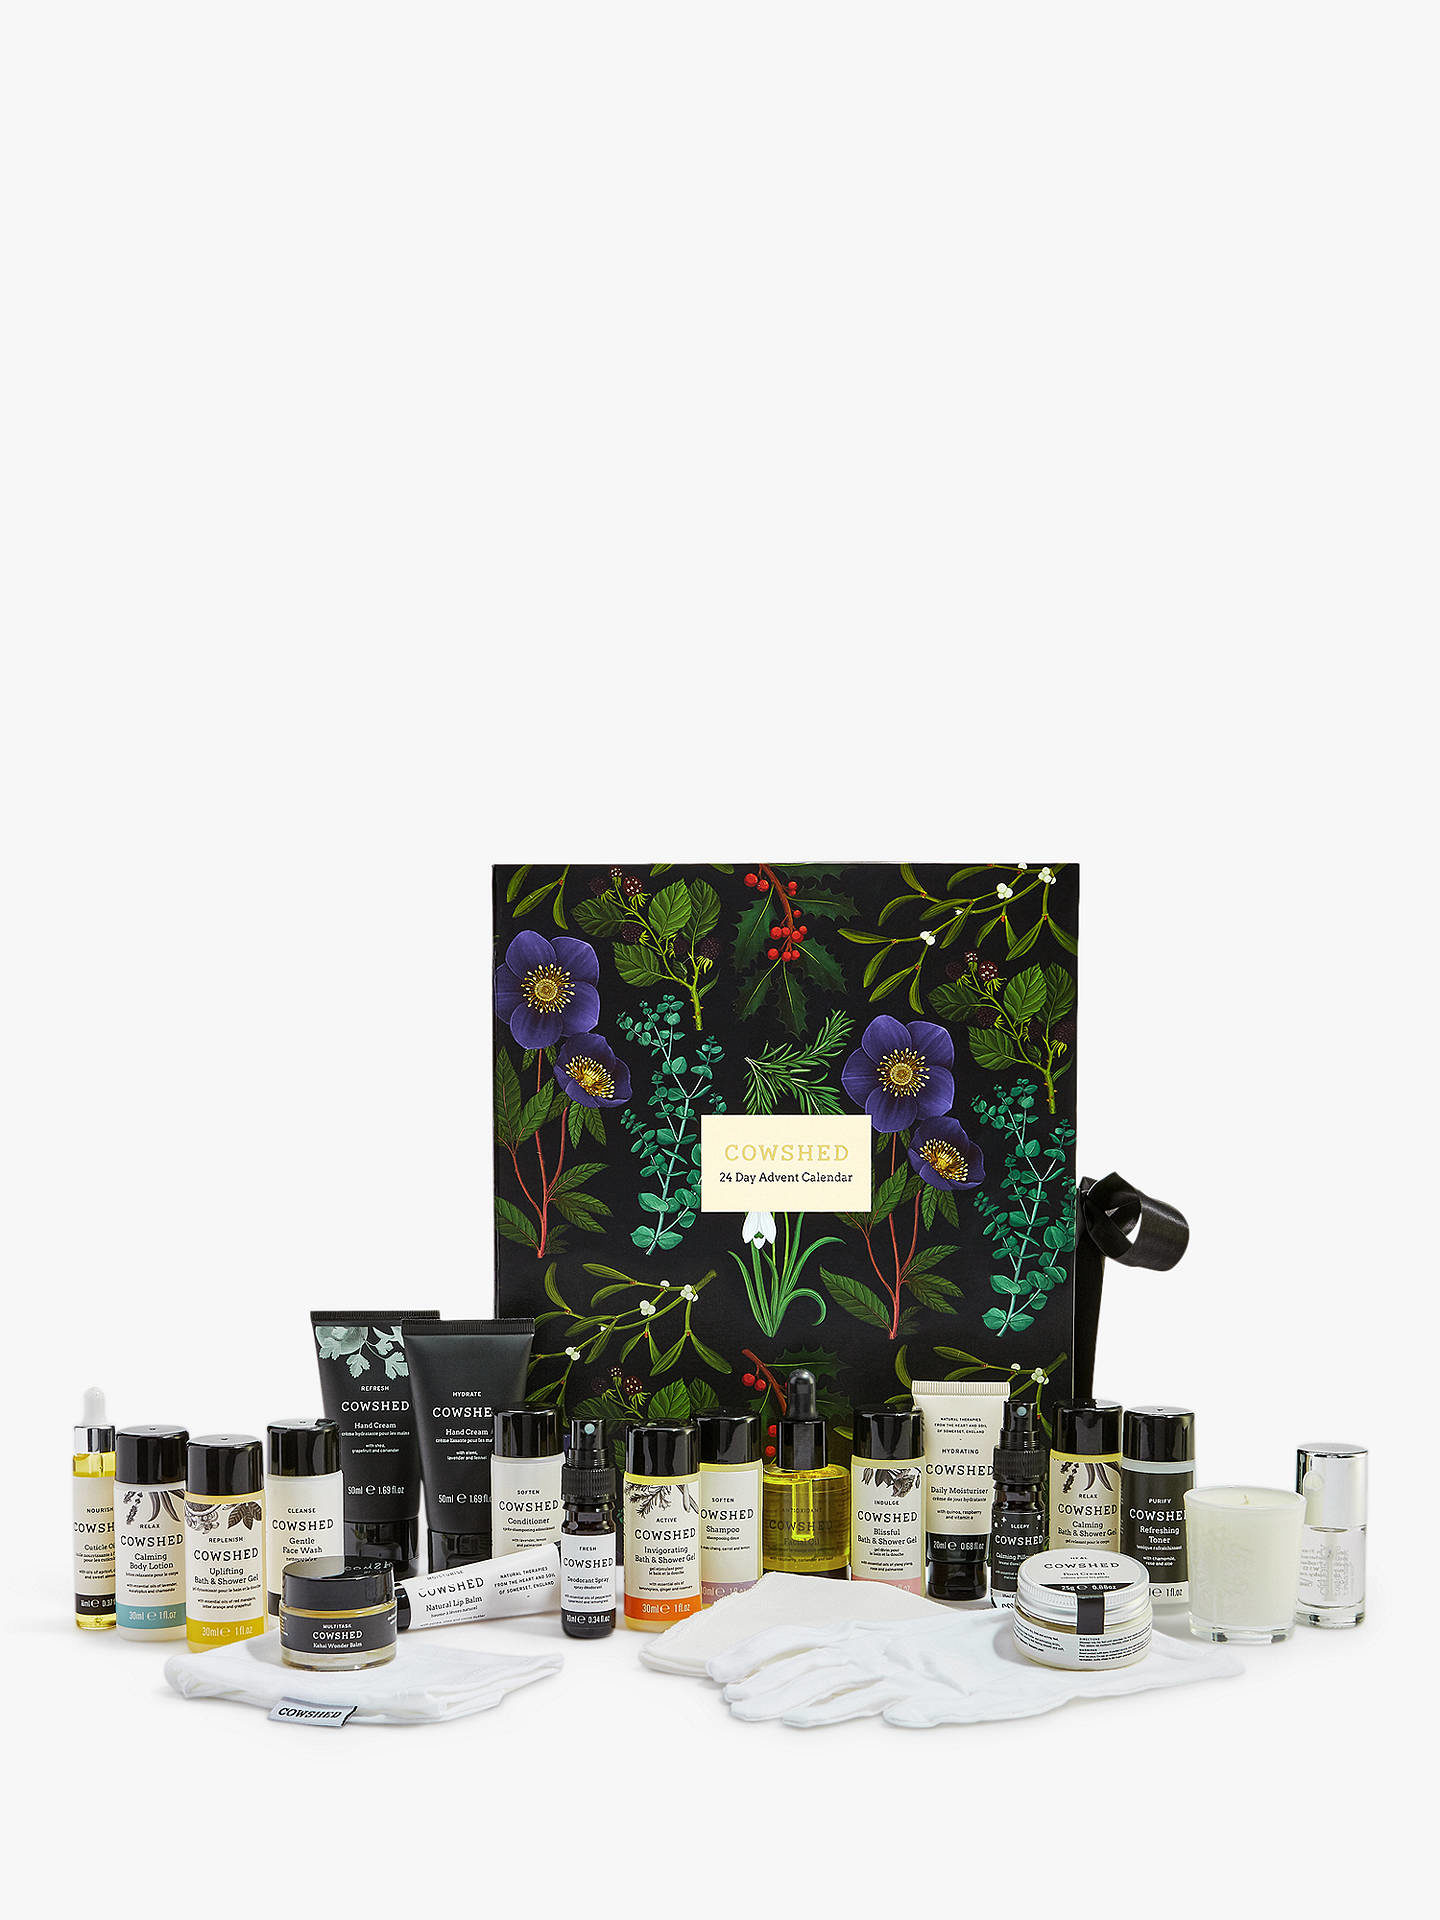 Best cruelty free beauty advent calendars 2019 - Cowshed